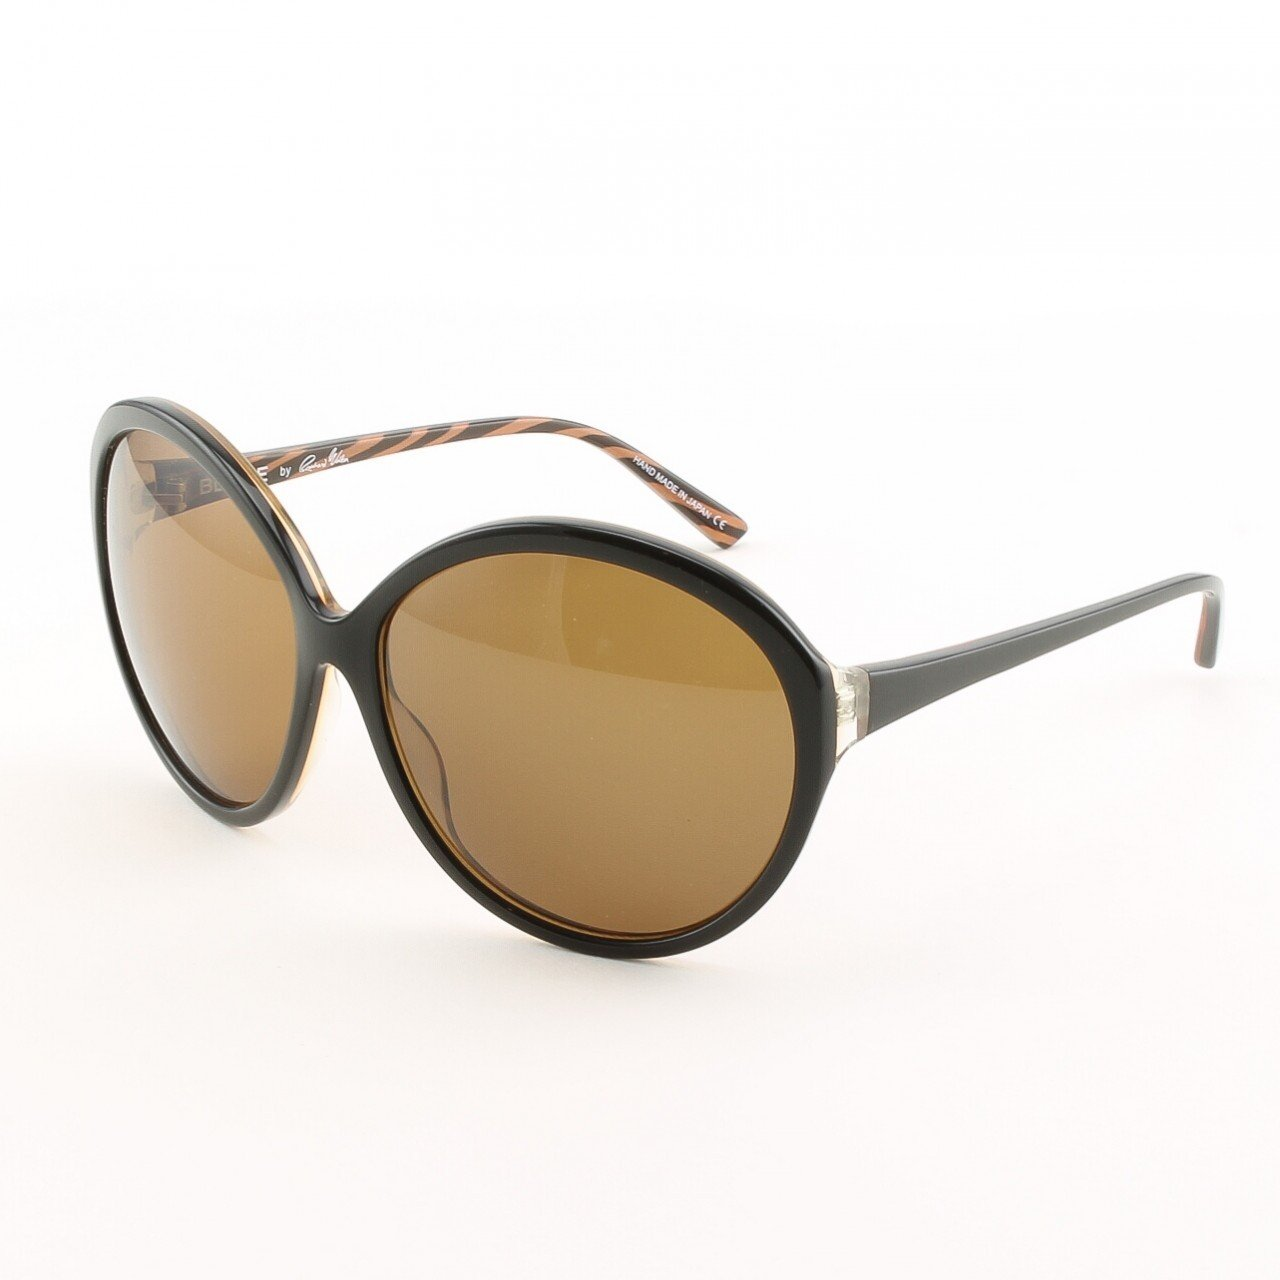 Blinde Way Hot Women's Sunglasses Col. Brown Zebra with Brown Lenses